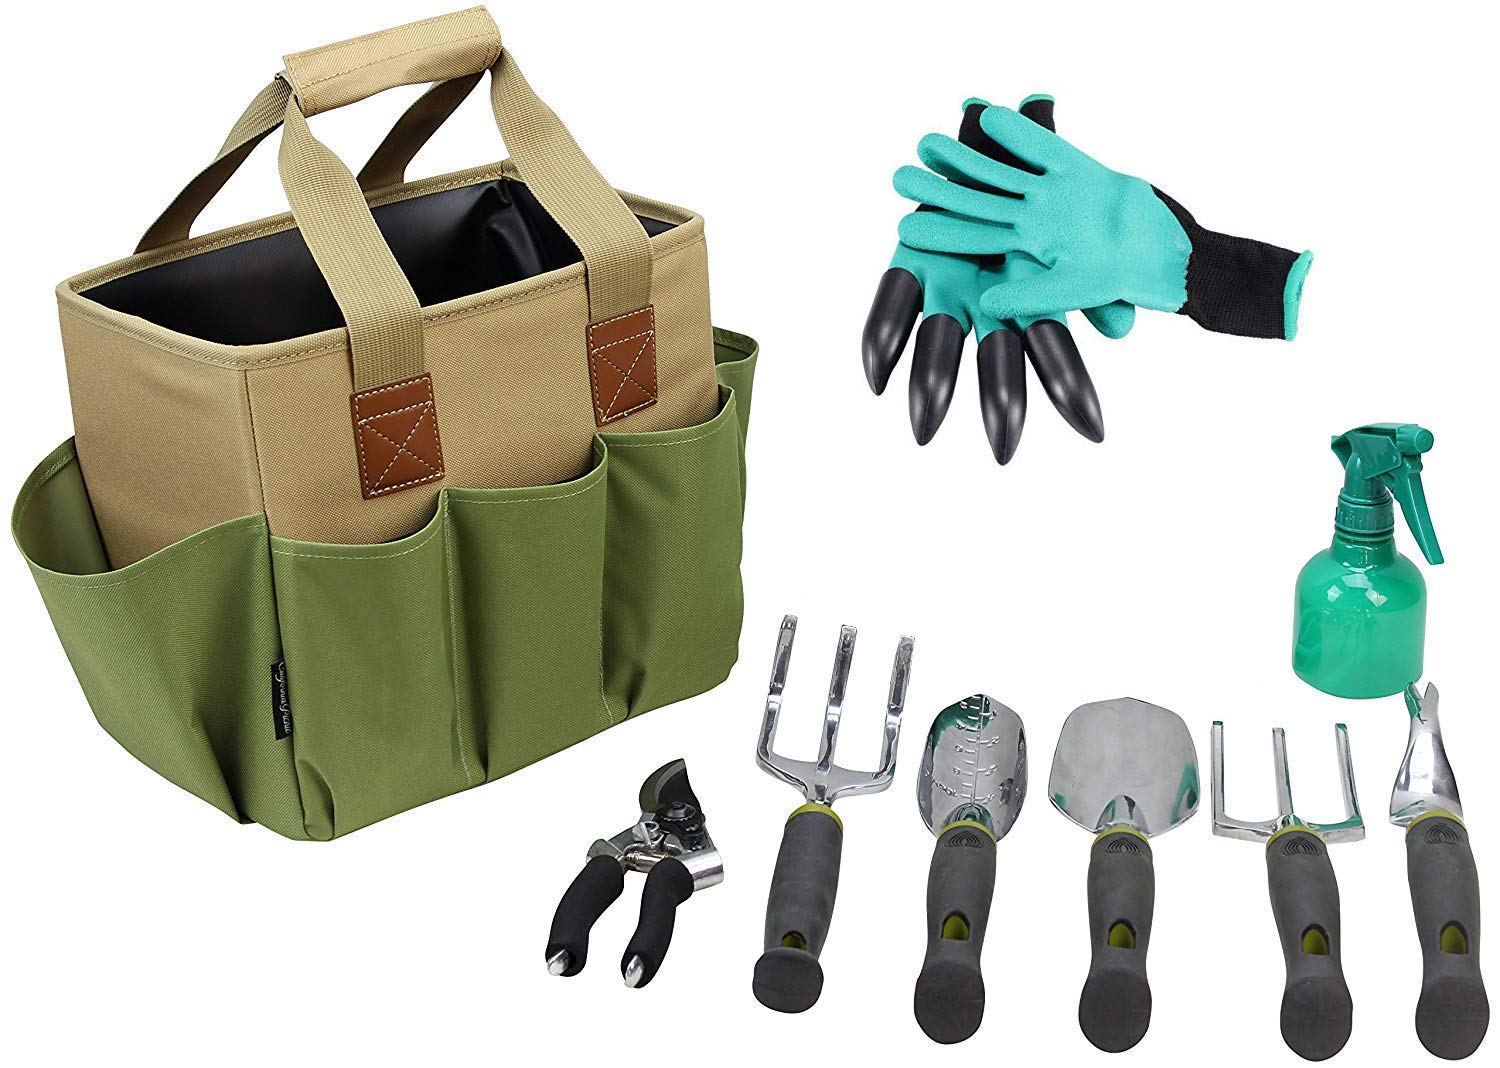 Gardening Tools Set | Garden Tools Kit | Gardening Gloves | 9 Piece Garden Tool Set | Digging Claw Gardening Gloves Gardening Gifts Tool Set | Planting Tools | Gardening Supplies Basket | Rake Gloves